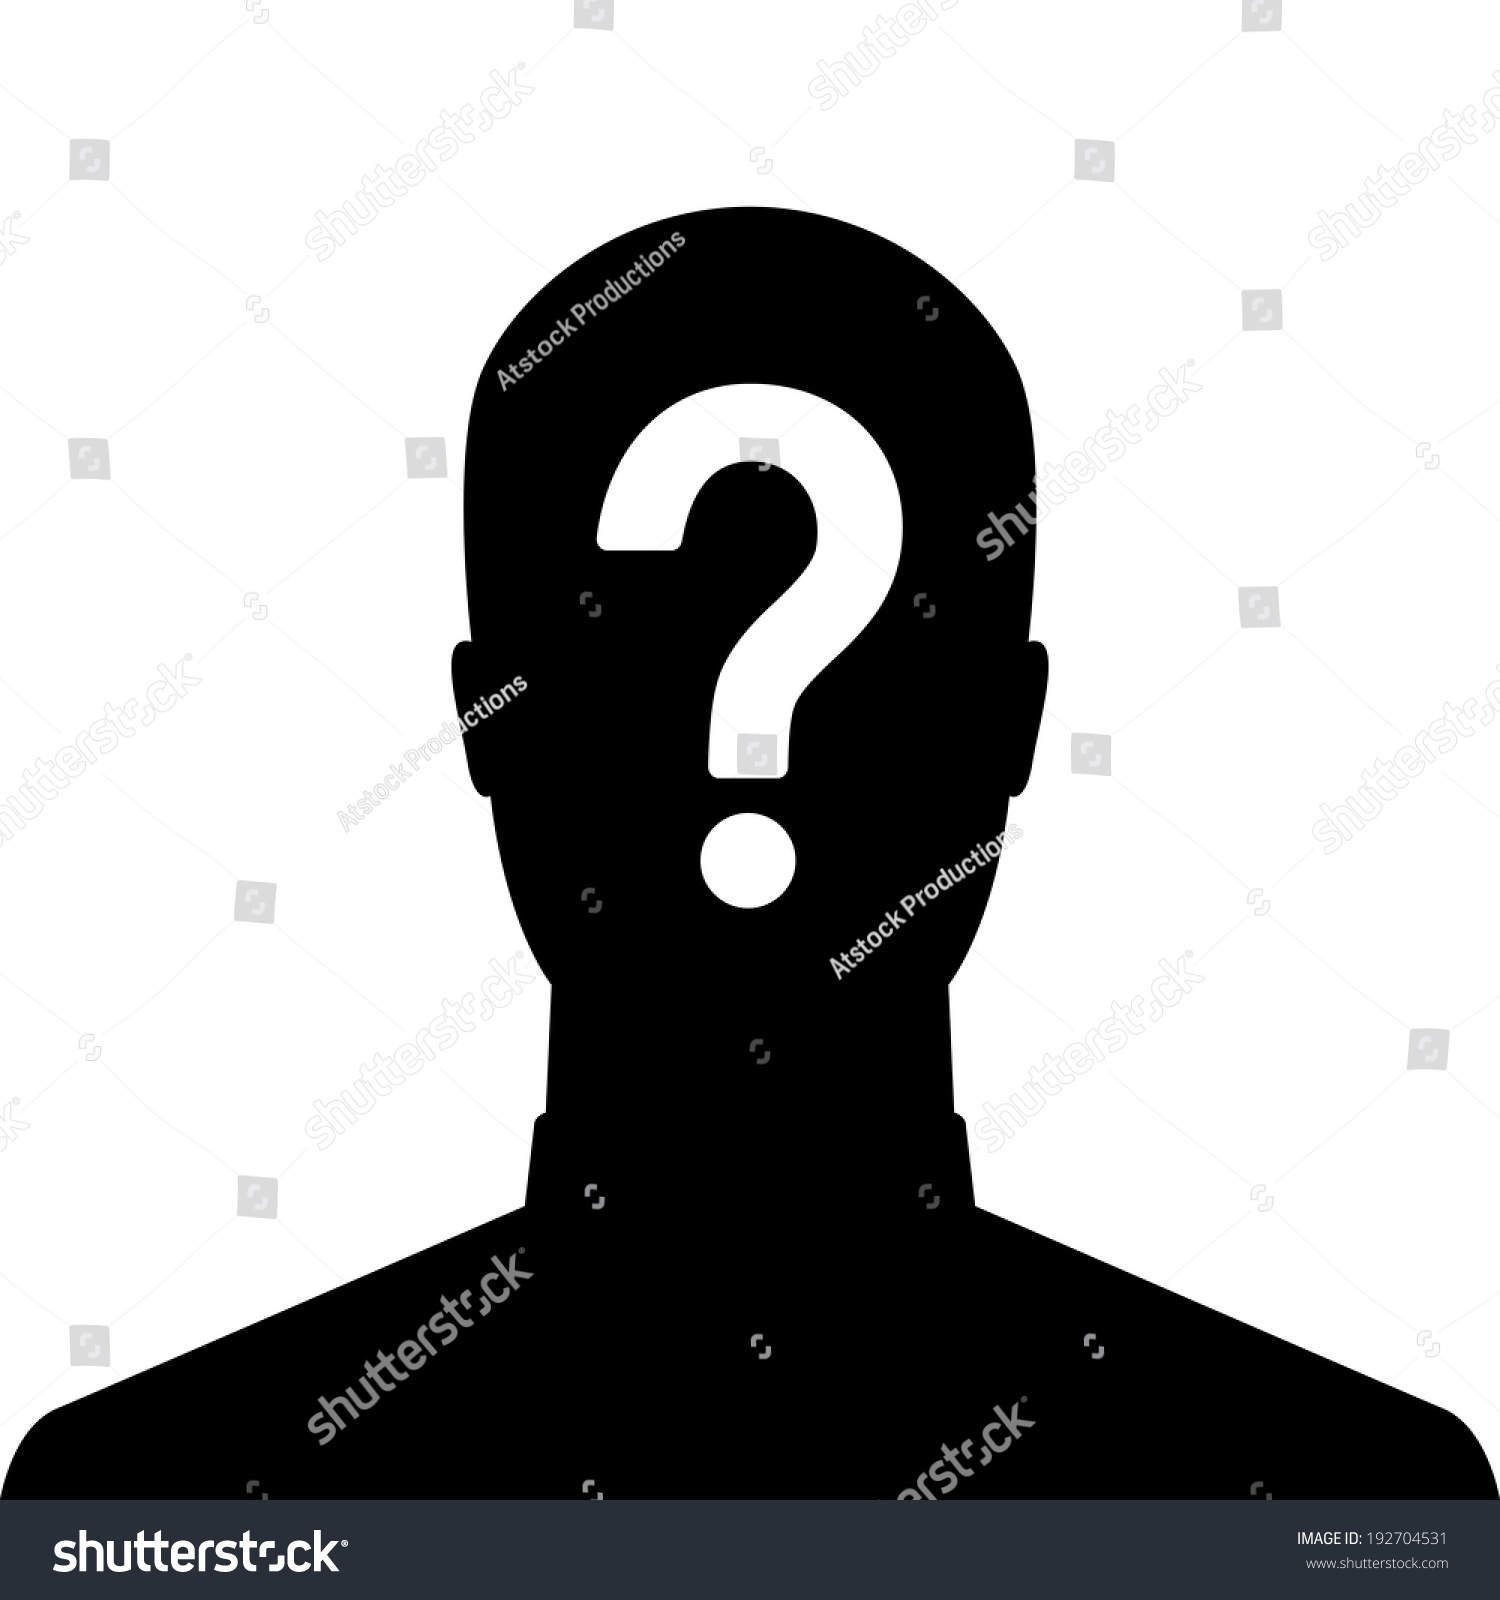 Man Silhouette Icon Question Mark Sign Stock Vector ...